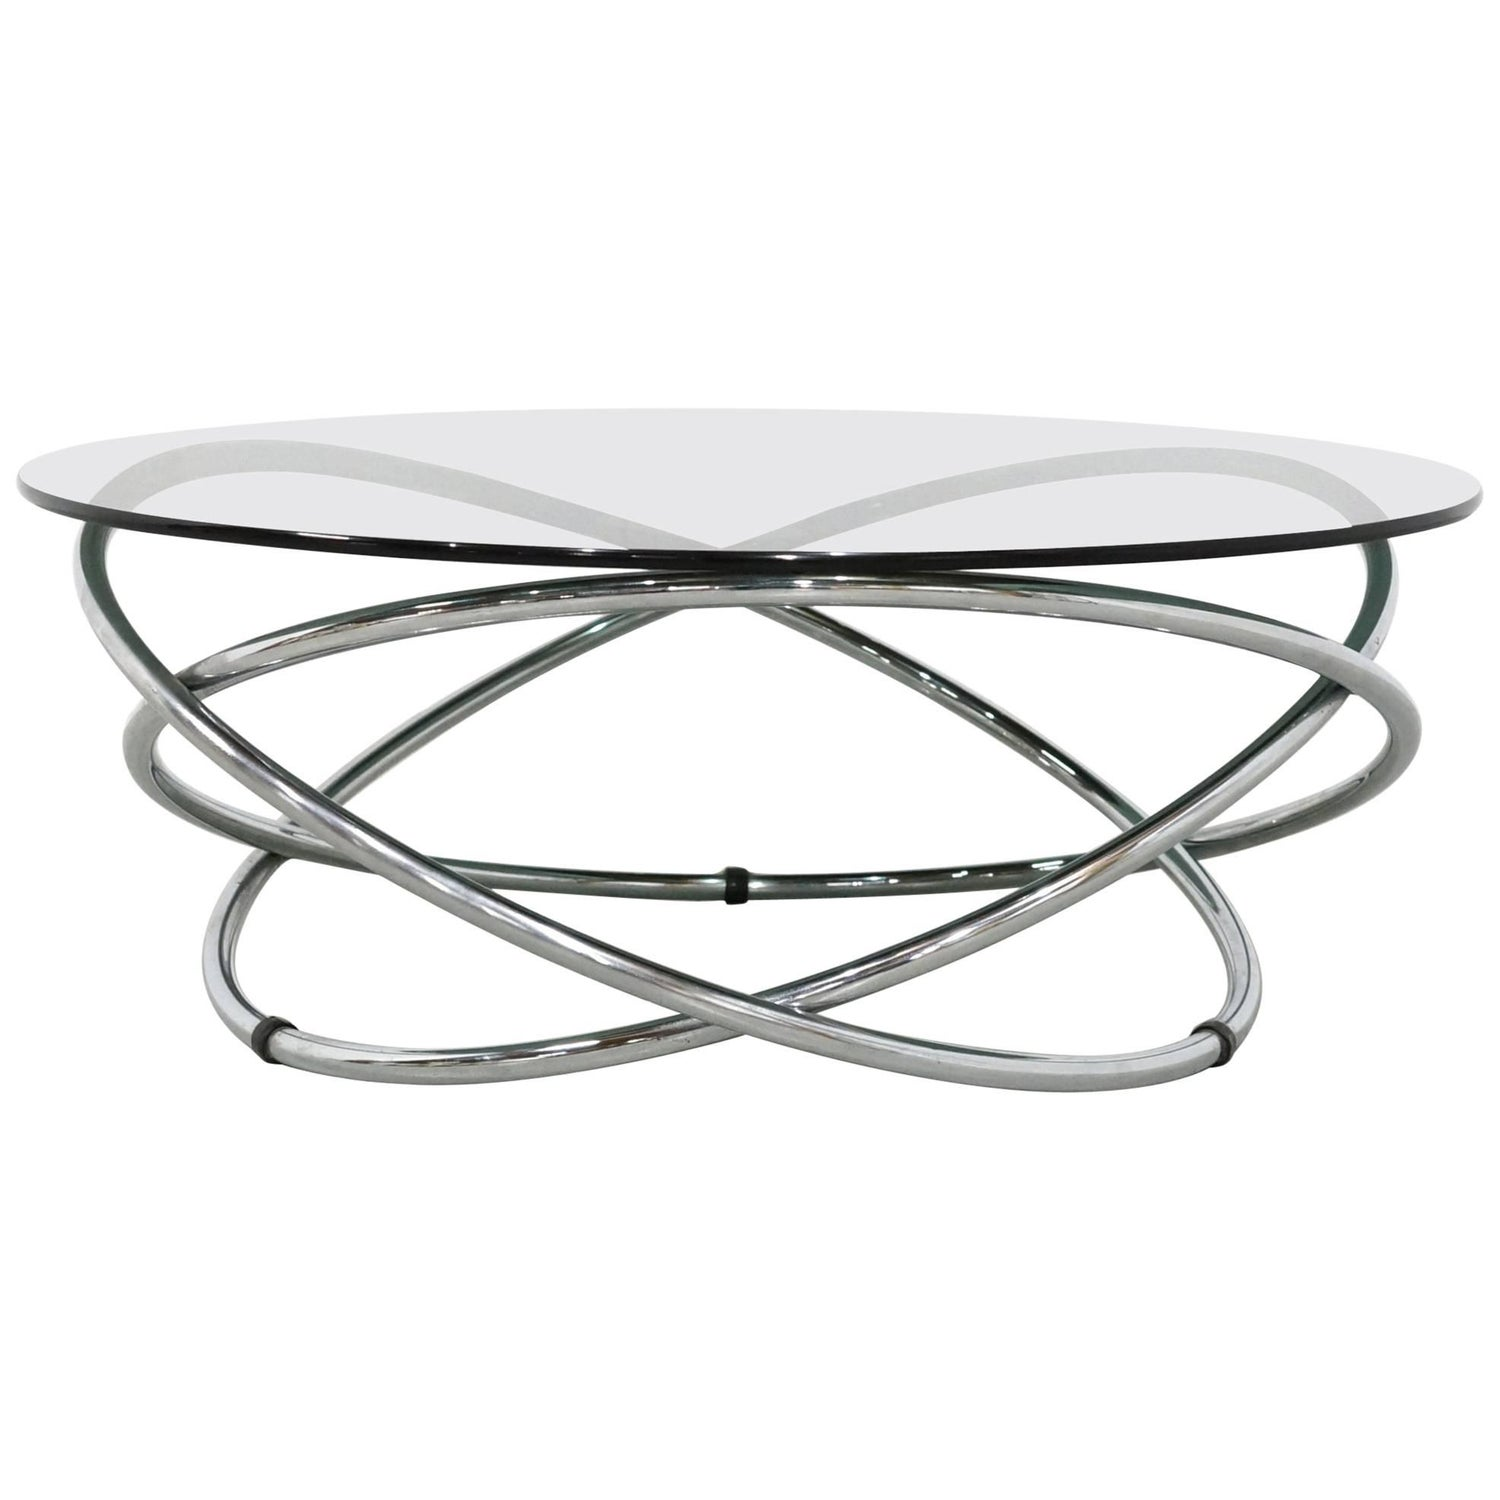 1960s Marble and Glass Coffee Table by Fournier Paris For Sale at